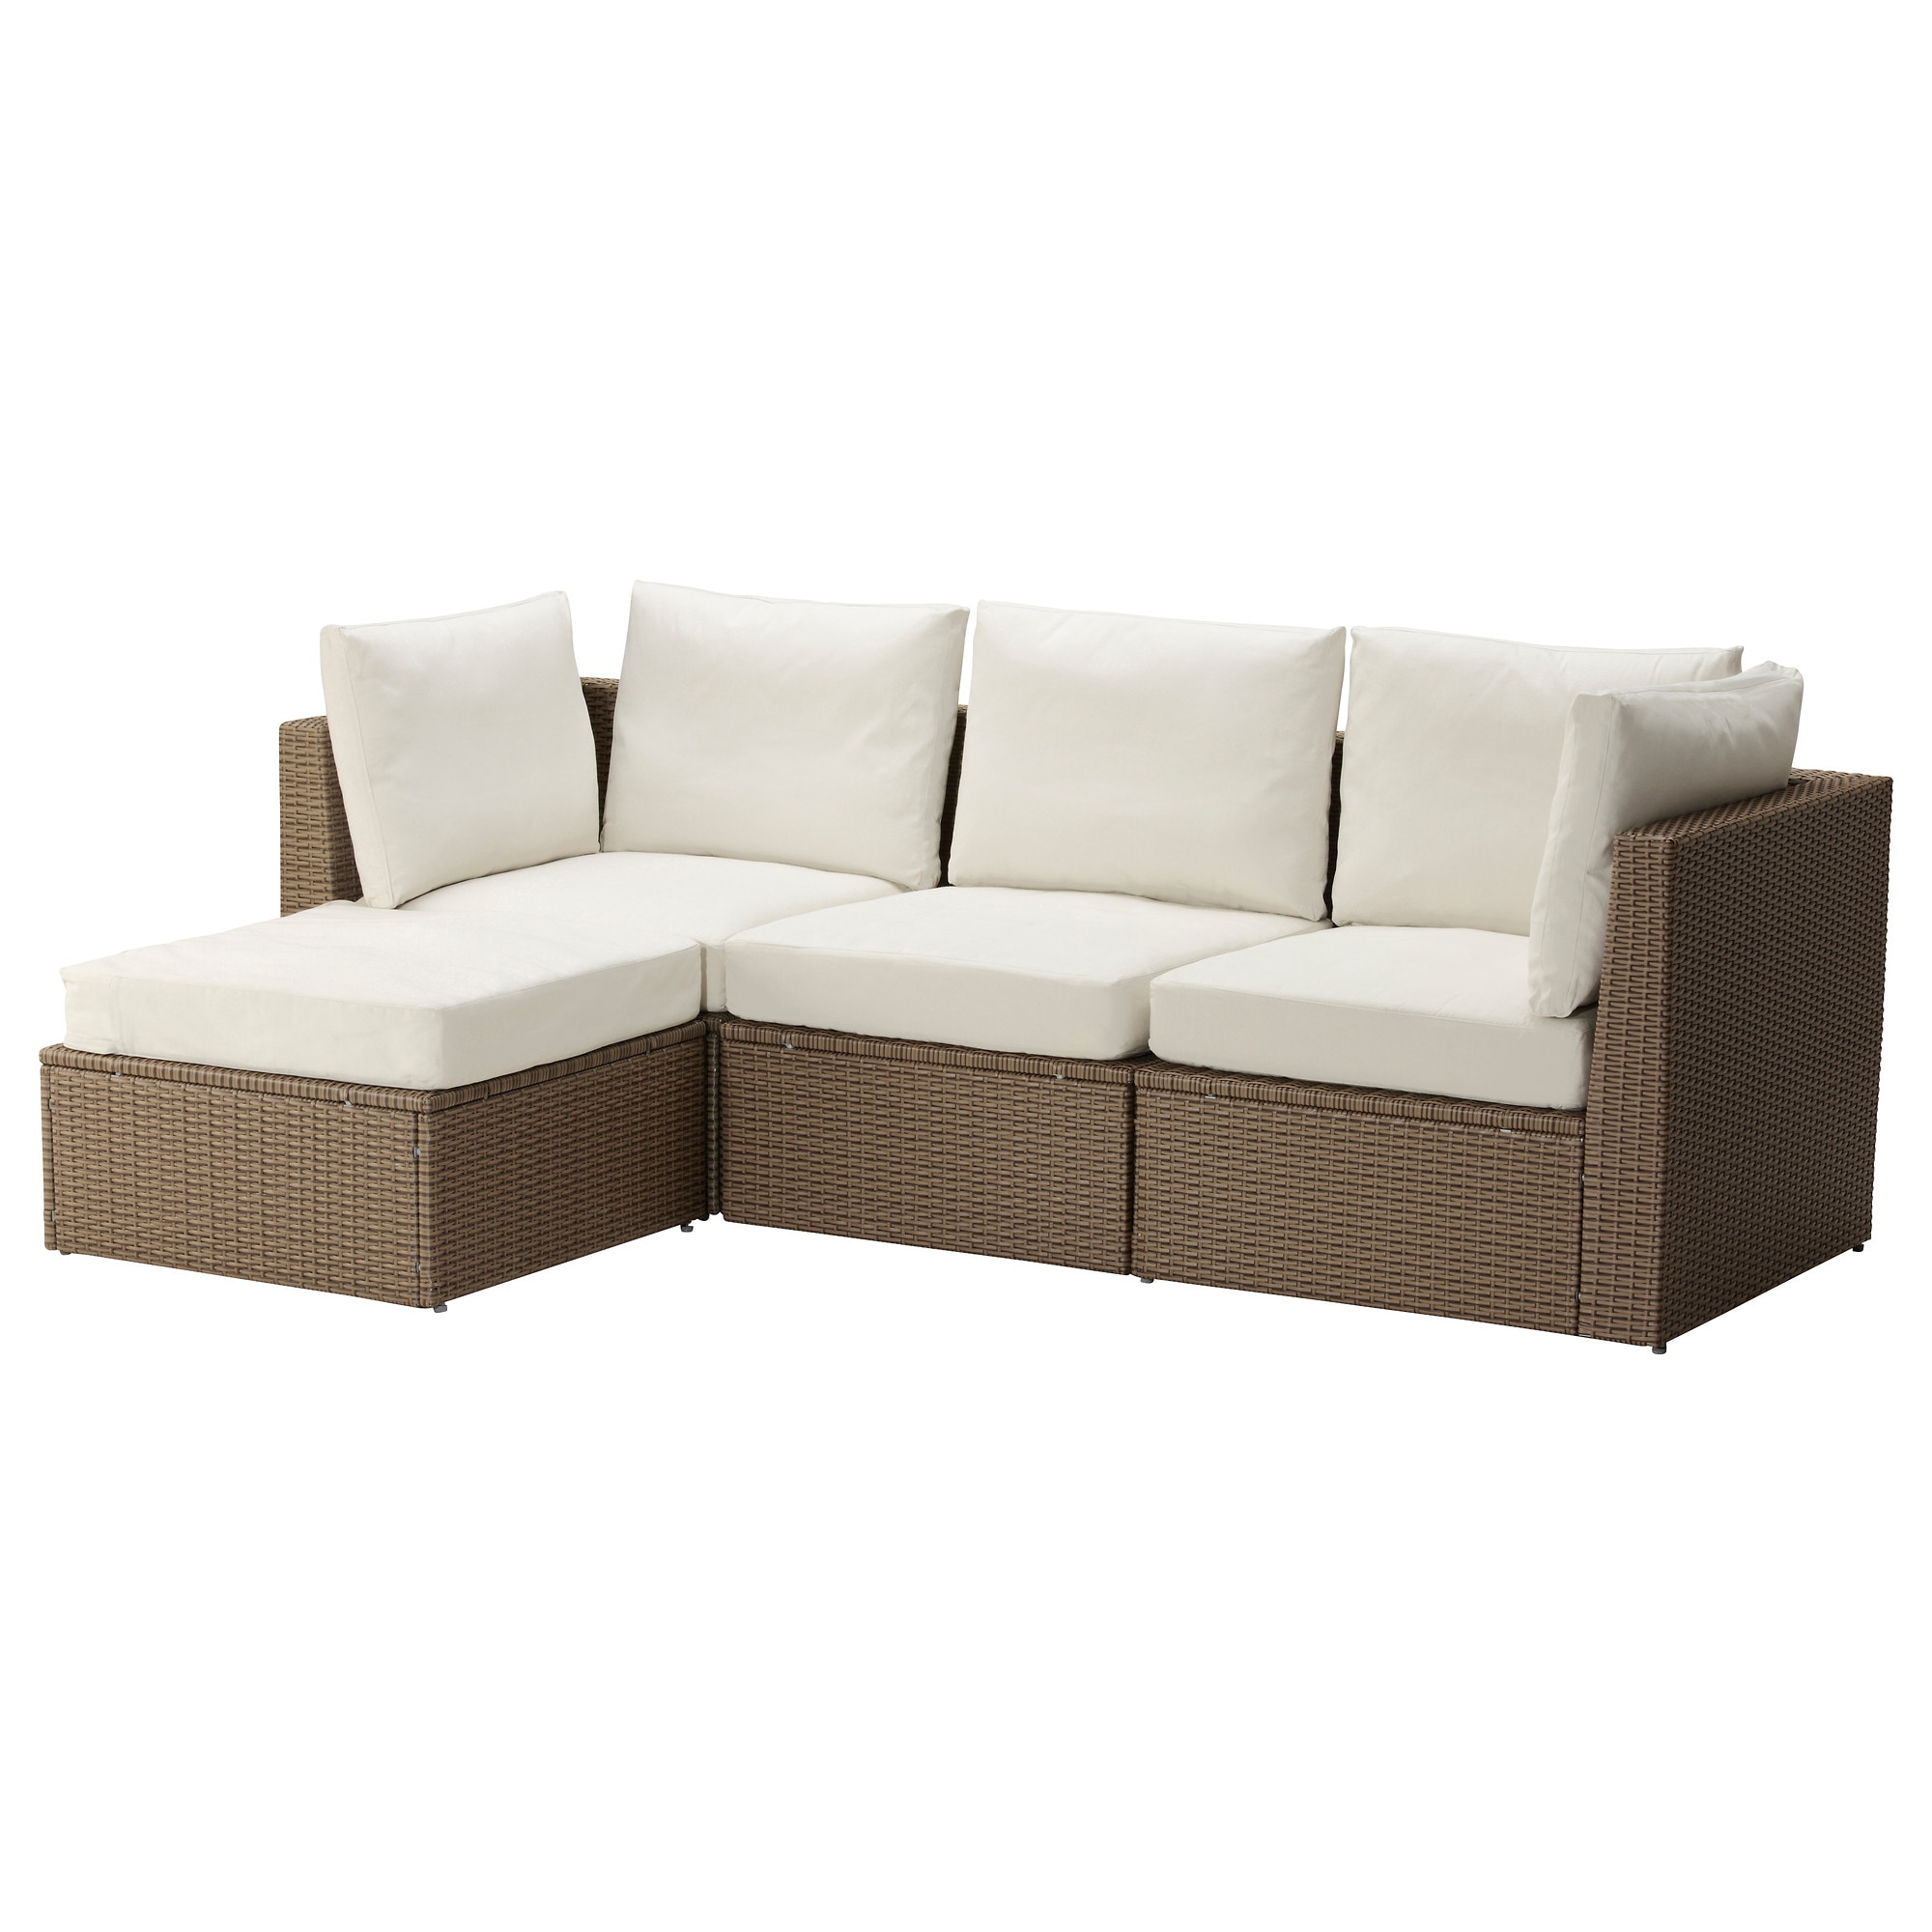 ARHOLMA Sofa With Footstool, Outdoor   IKEA